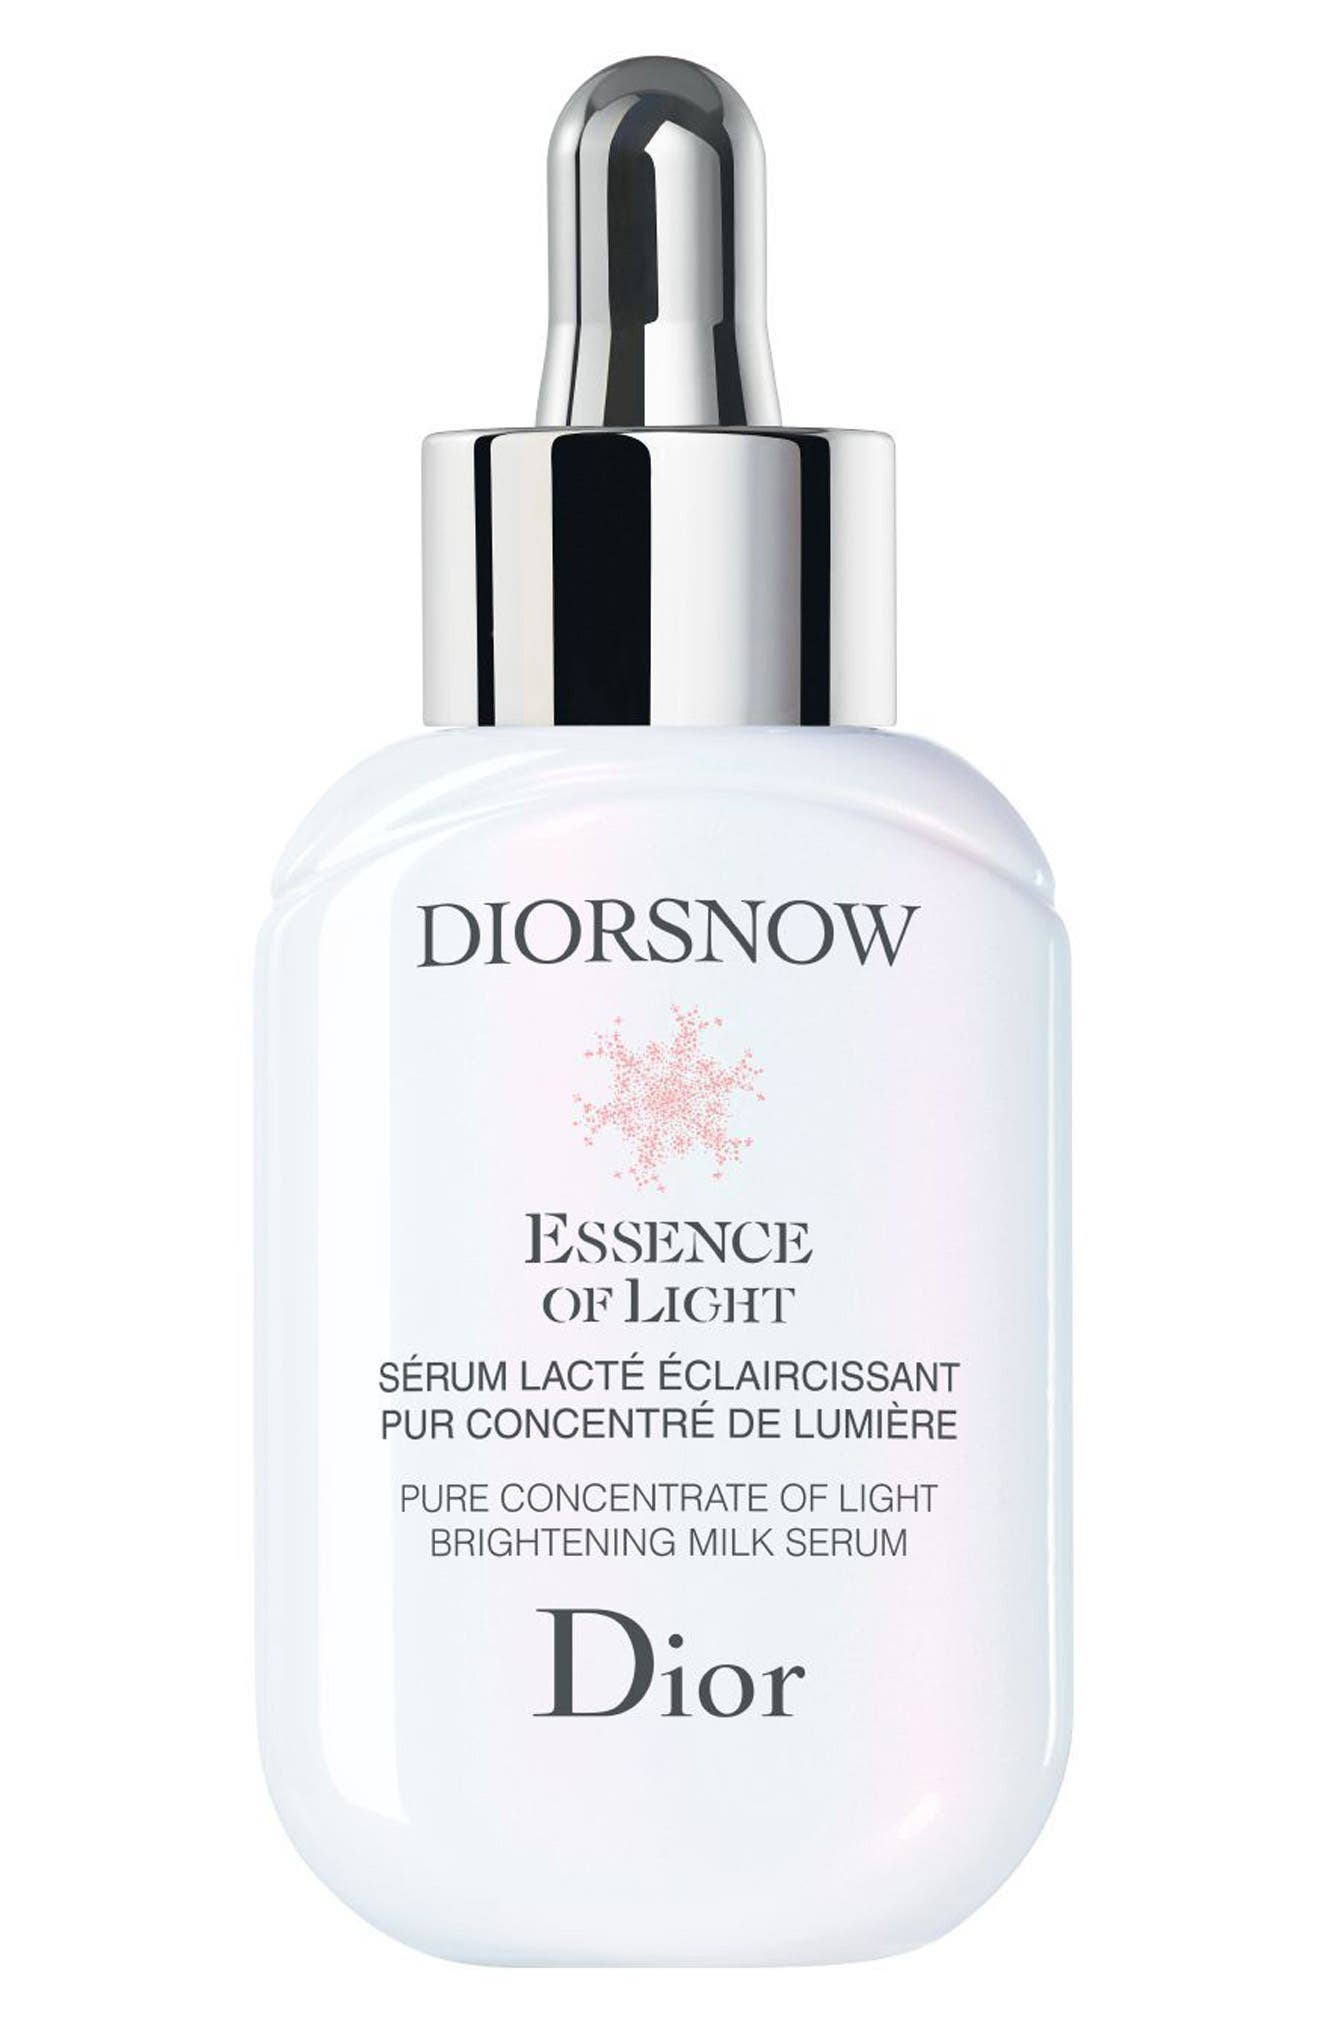 Diorsnow Essence of Light Brightening Milk Serum,                             Main thumbnail 1, color,                             No Color